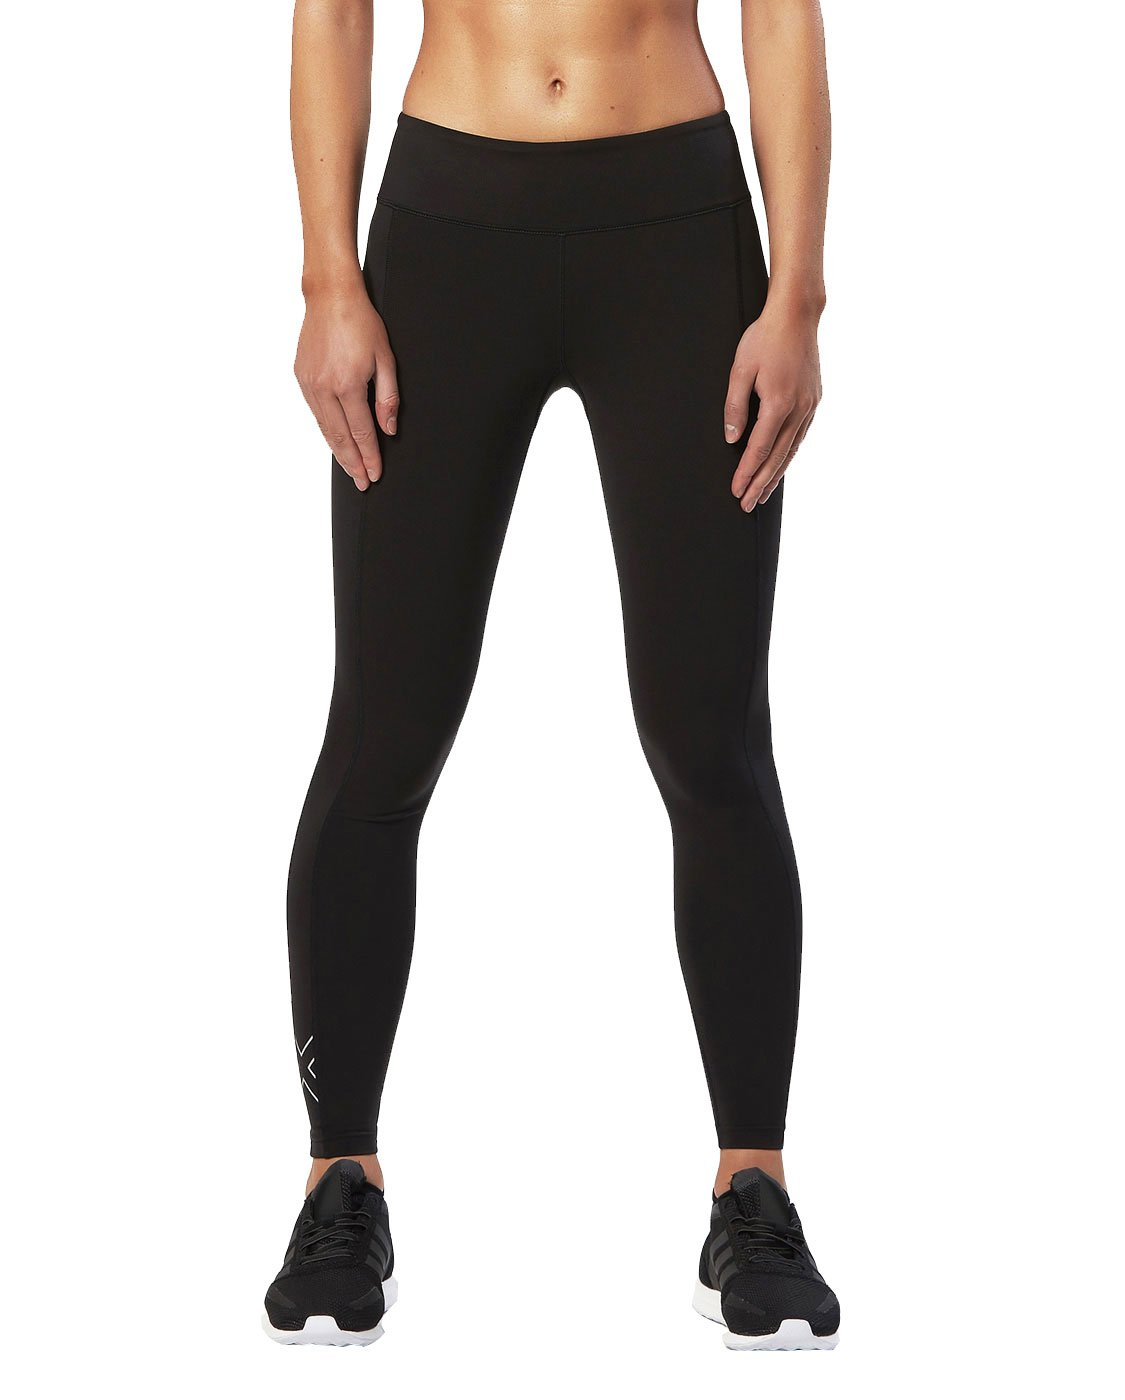 2XU Women's Active Compression Tights, Black/Silver, Large by 2XU (Image #2)